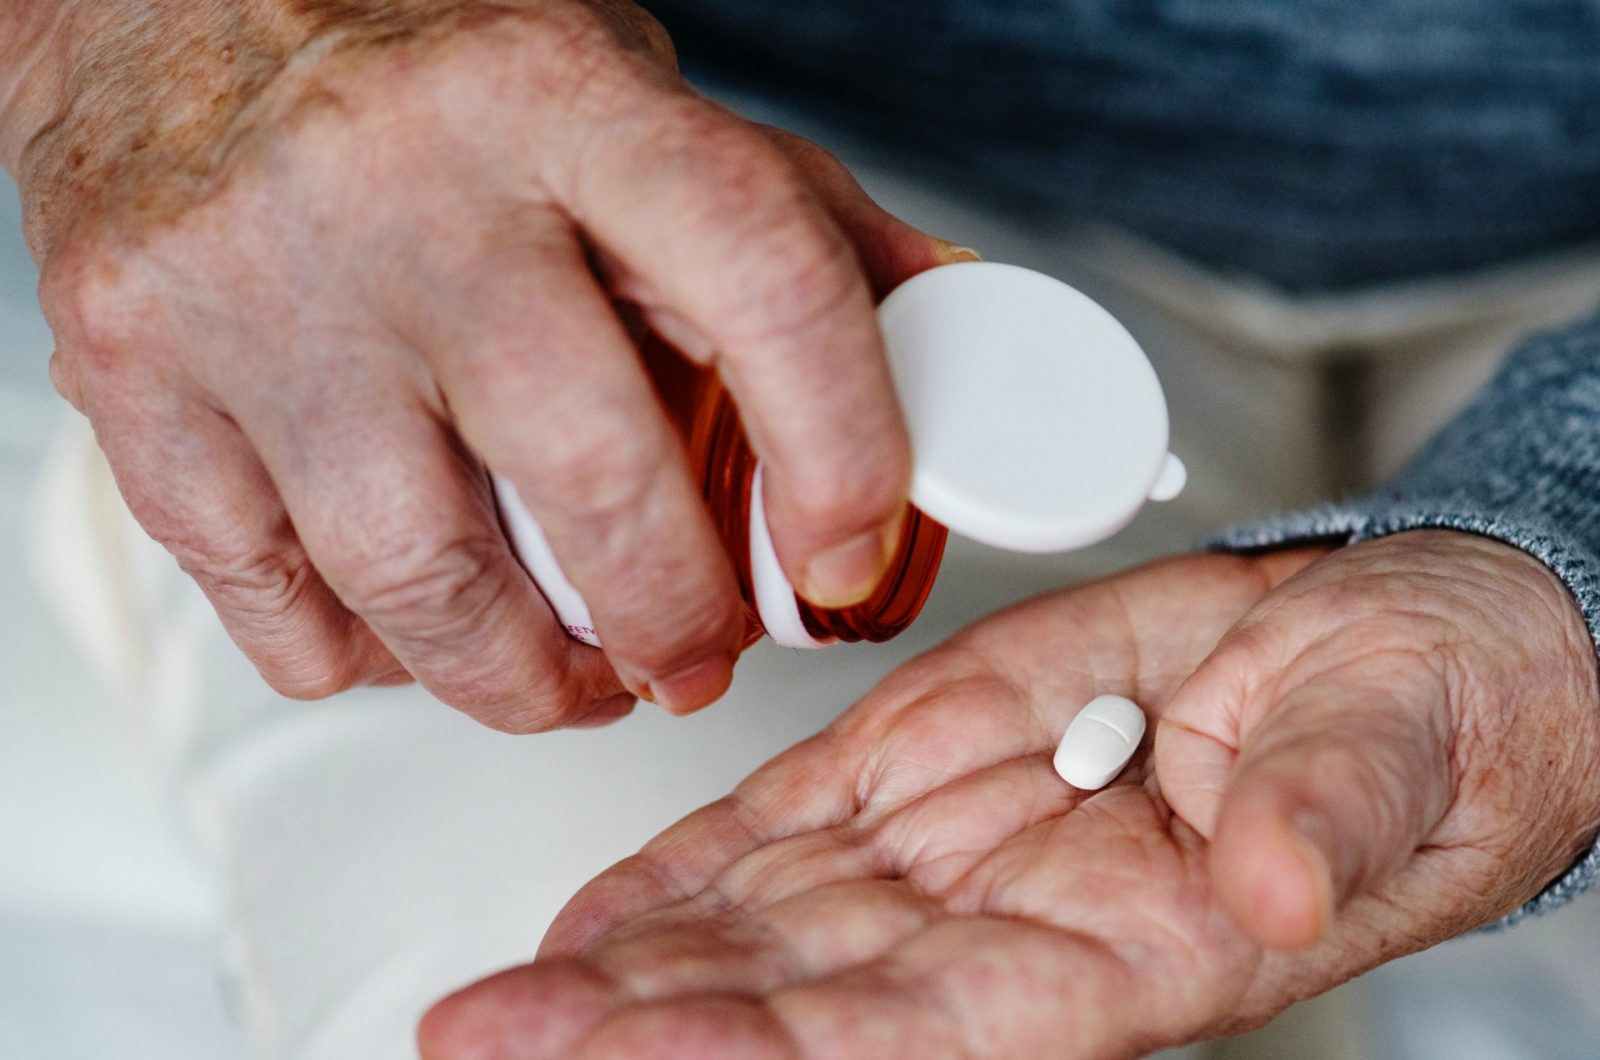 man using medication to treat incontinence